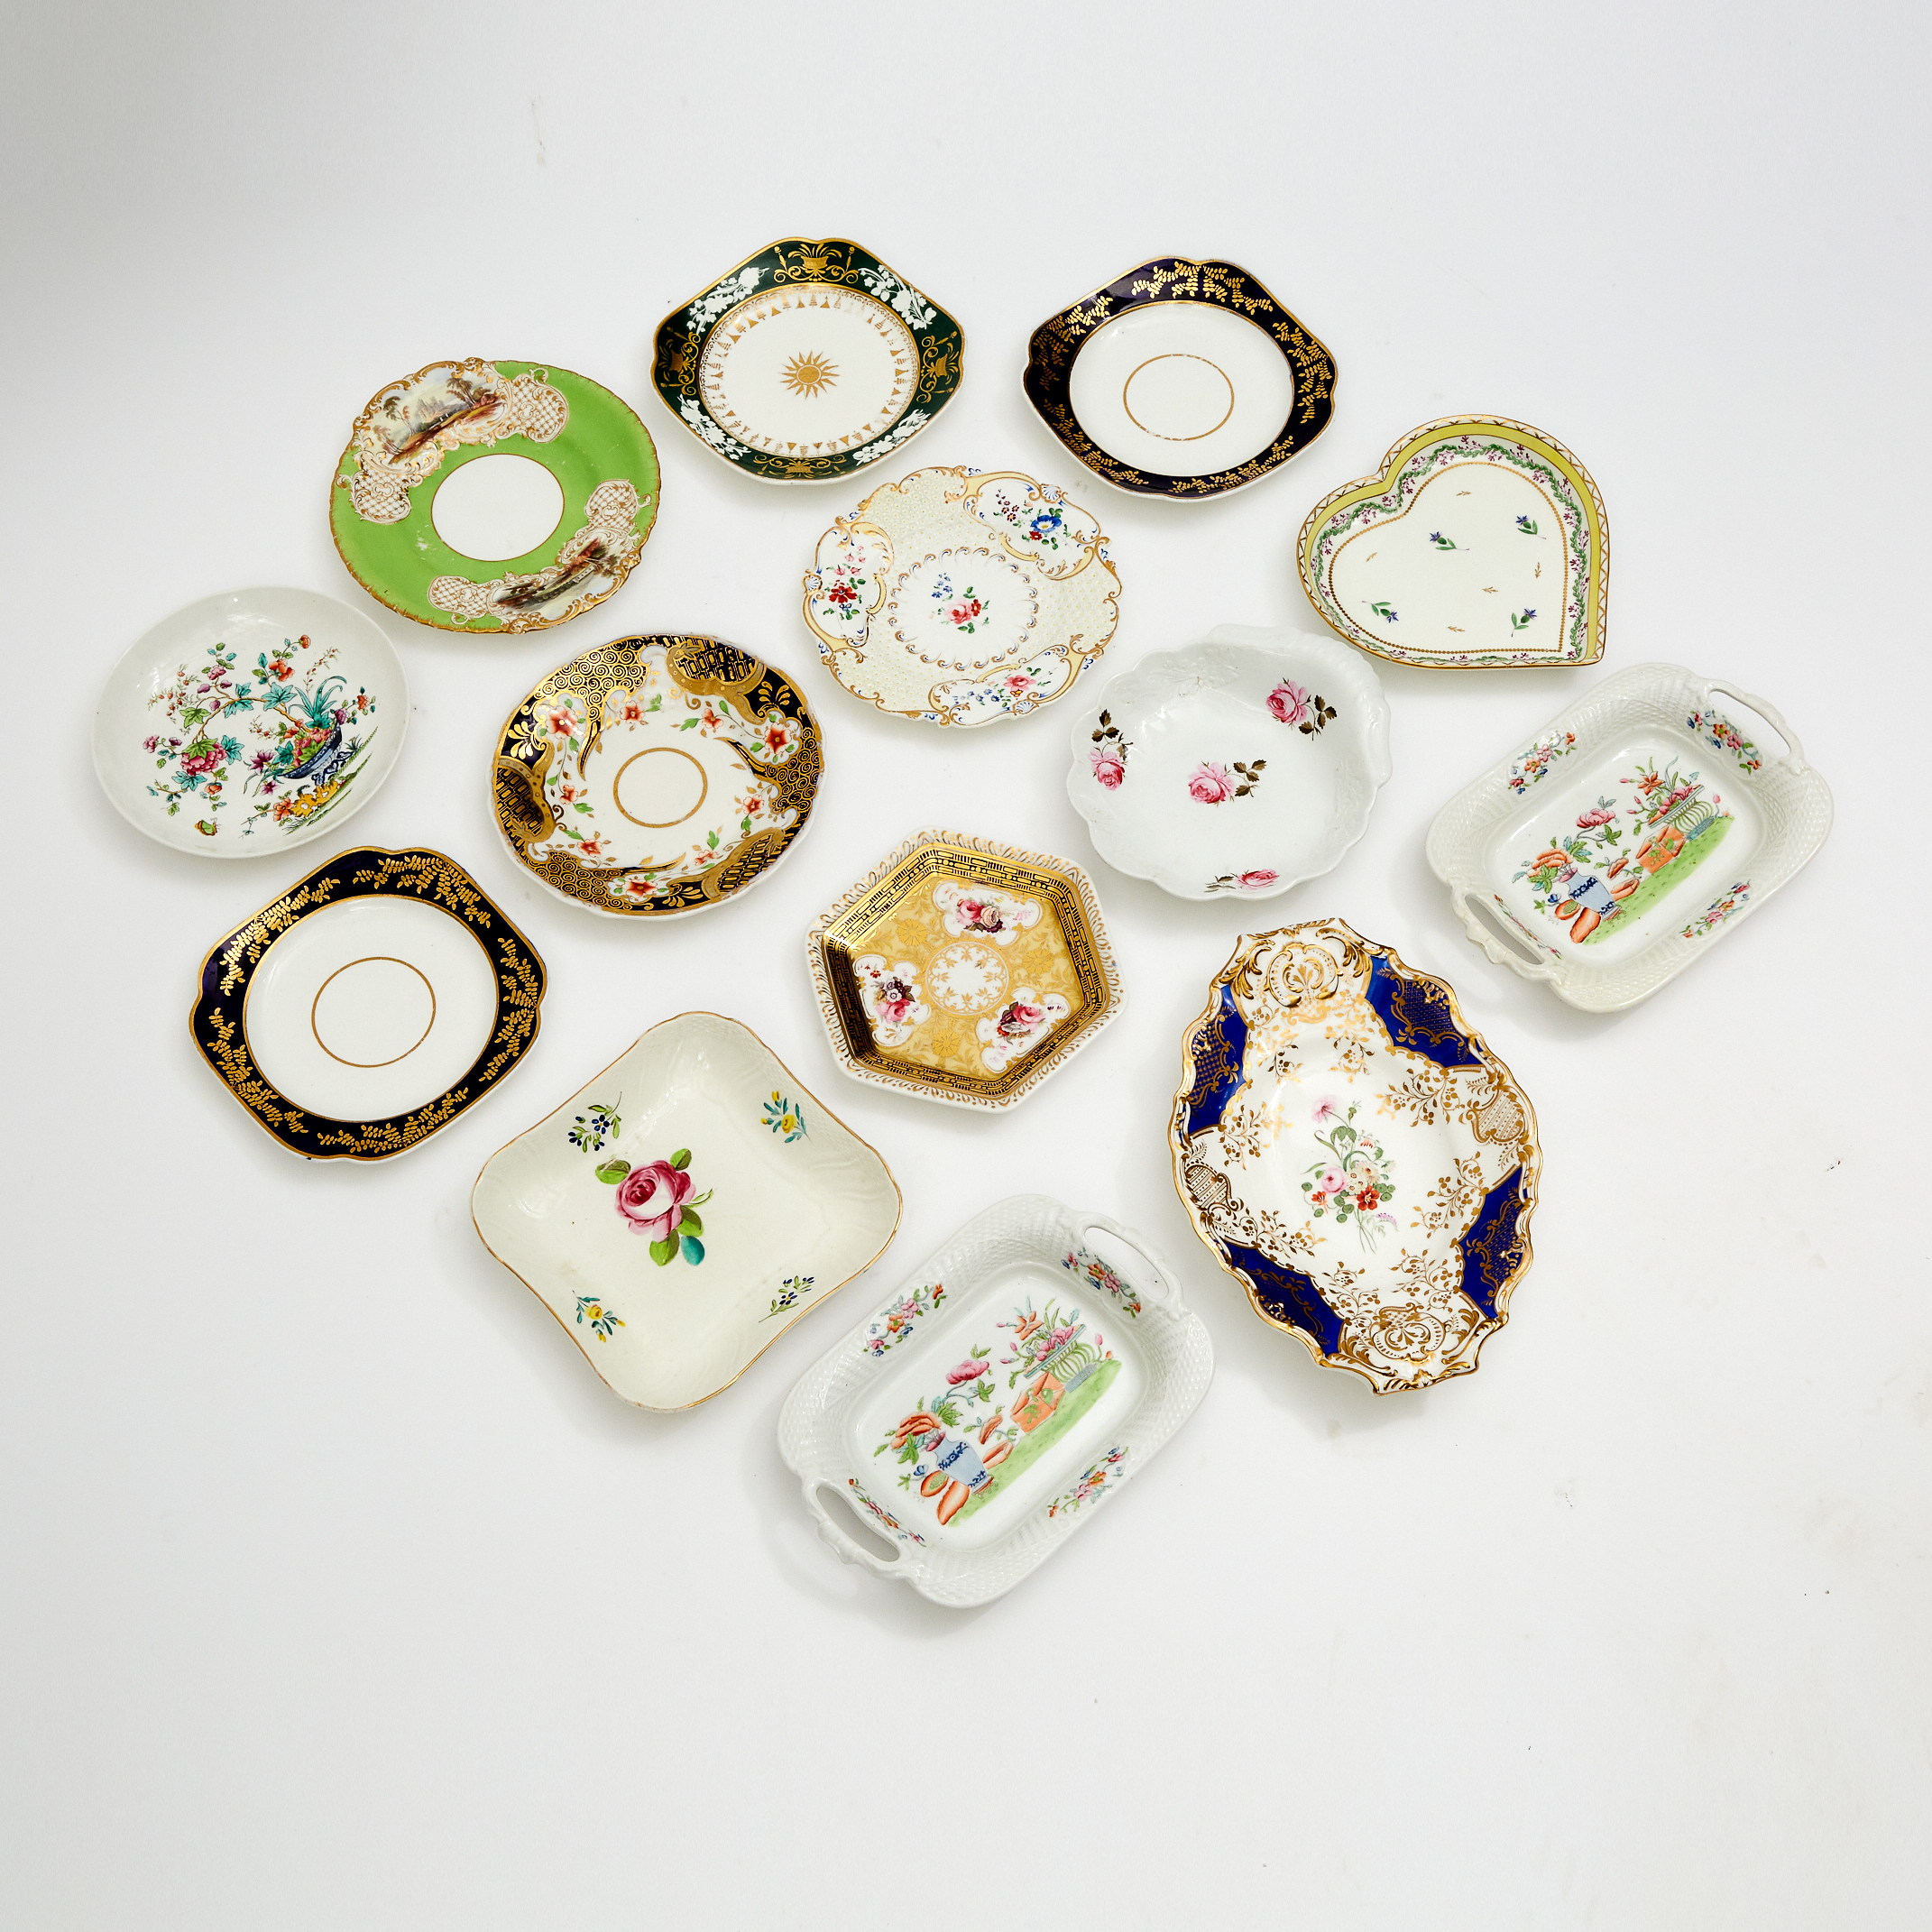 Fourteen Various English Porcelain Serving Dishes, 19th century